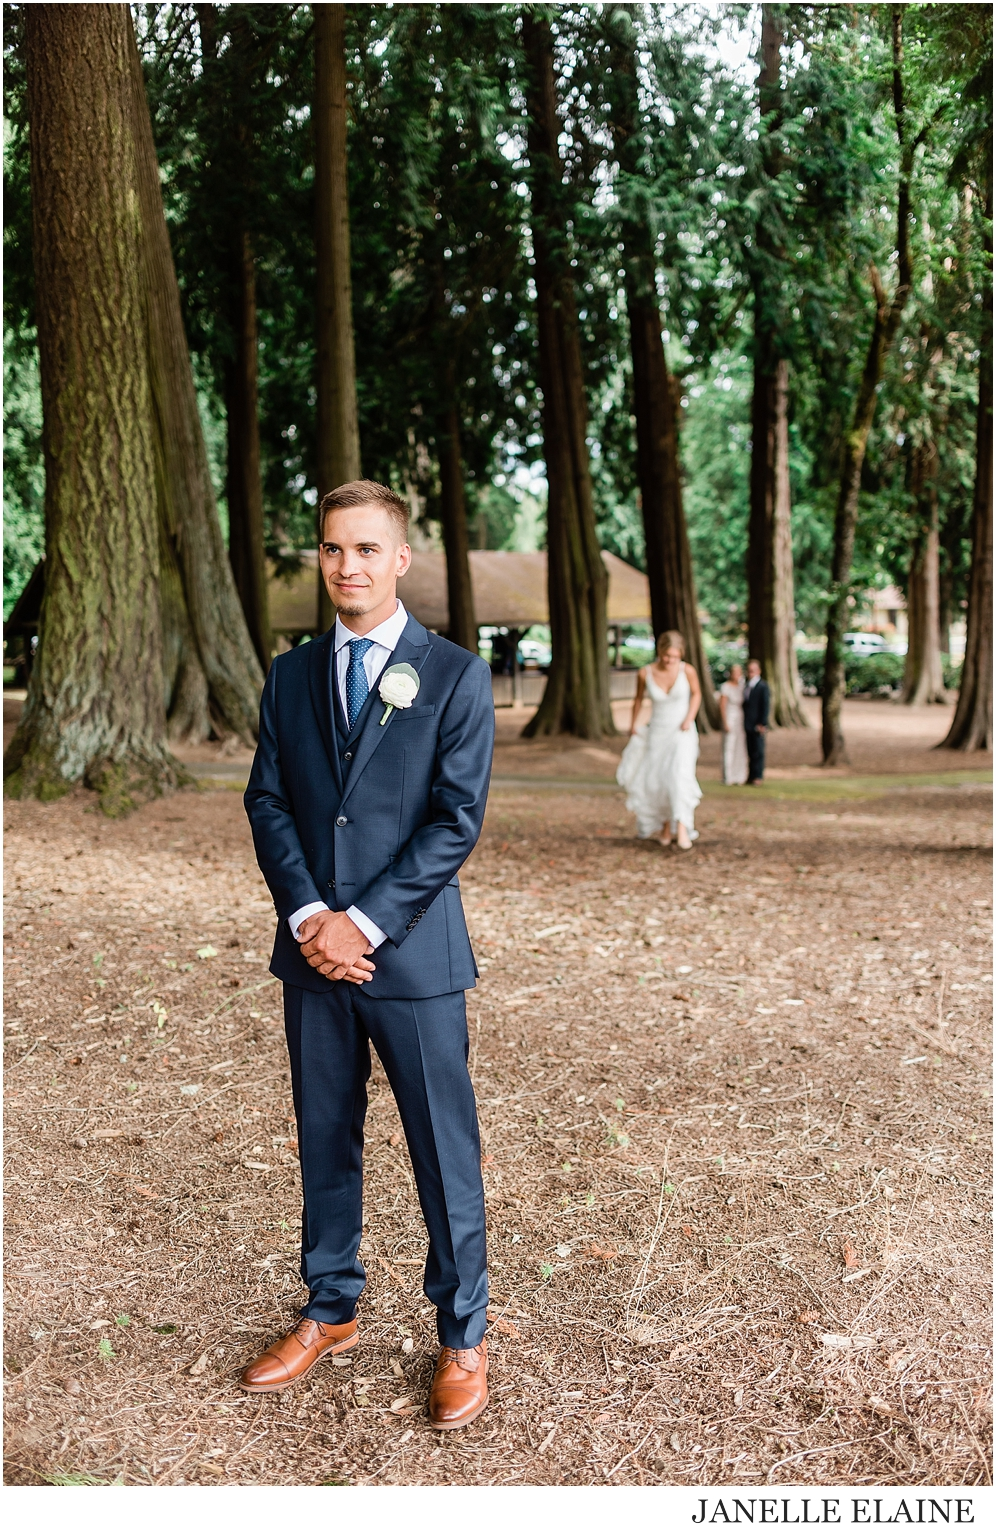 Tricia and Nathan Goddard Wedding-First Look and Portraits-Janelle Elaine Photography-2.jpg